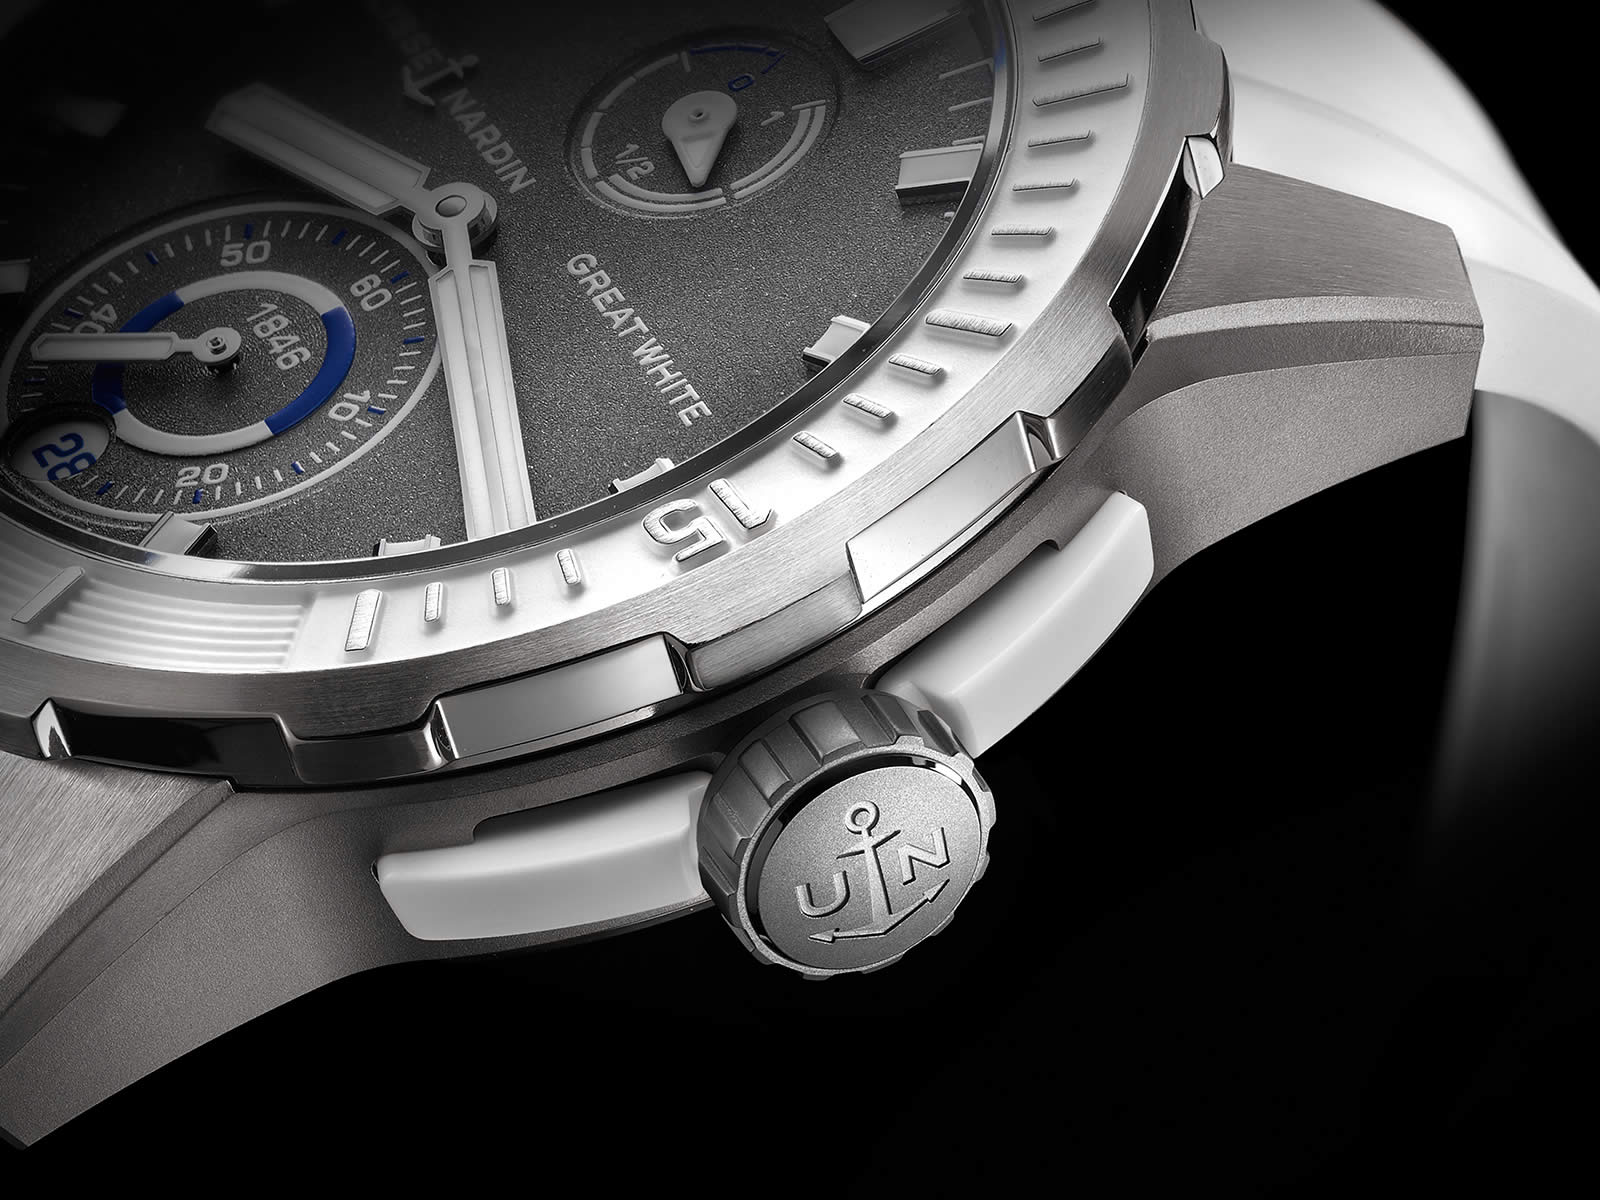 1183-170le-3-90-gw-ulysse-nardin-diver-chronometer-great-white-limited-edition-3.jpg